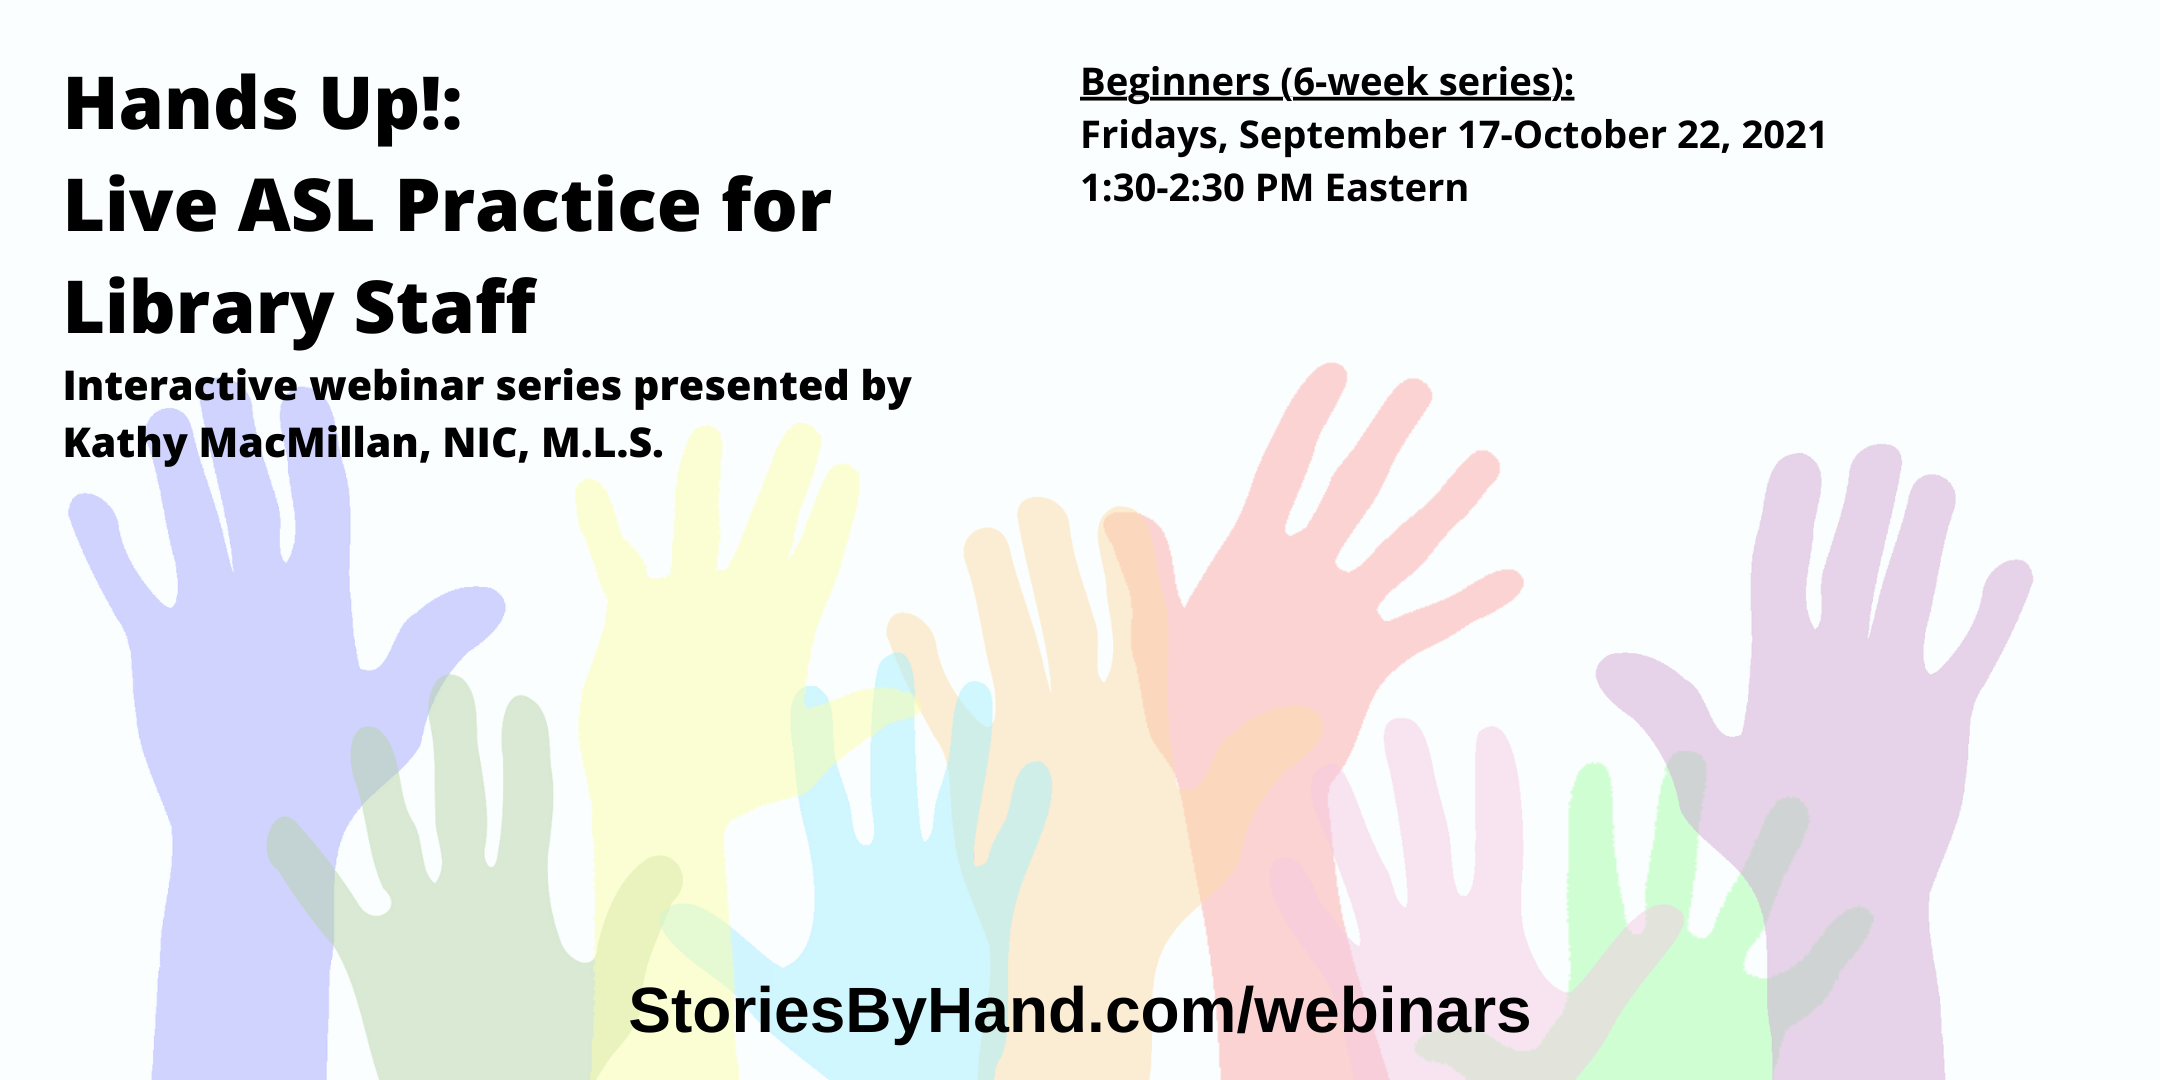 Hands Up!: Live ASL Practice for Library Staff | Interactive webinar series presented by Kathy MacMillan, NIC, M.L.S. | Beginners: Fridays, September 17-October 22 from 1:30-2:30 PM Eastern | StoriesByHand.com/webinars | Words appear over a drawing of upraised hands in bright pastel colors against a white background.